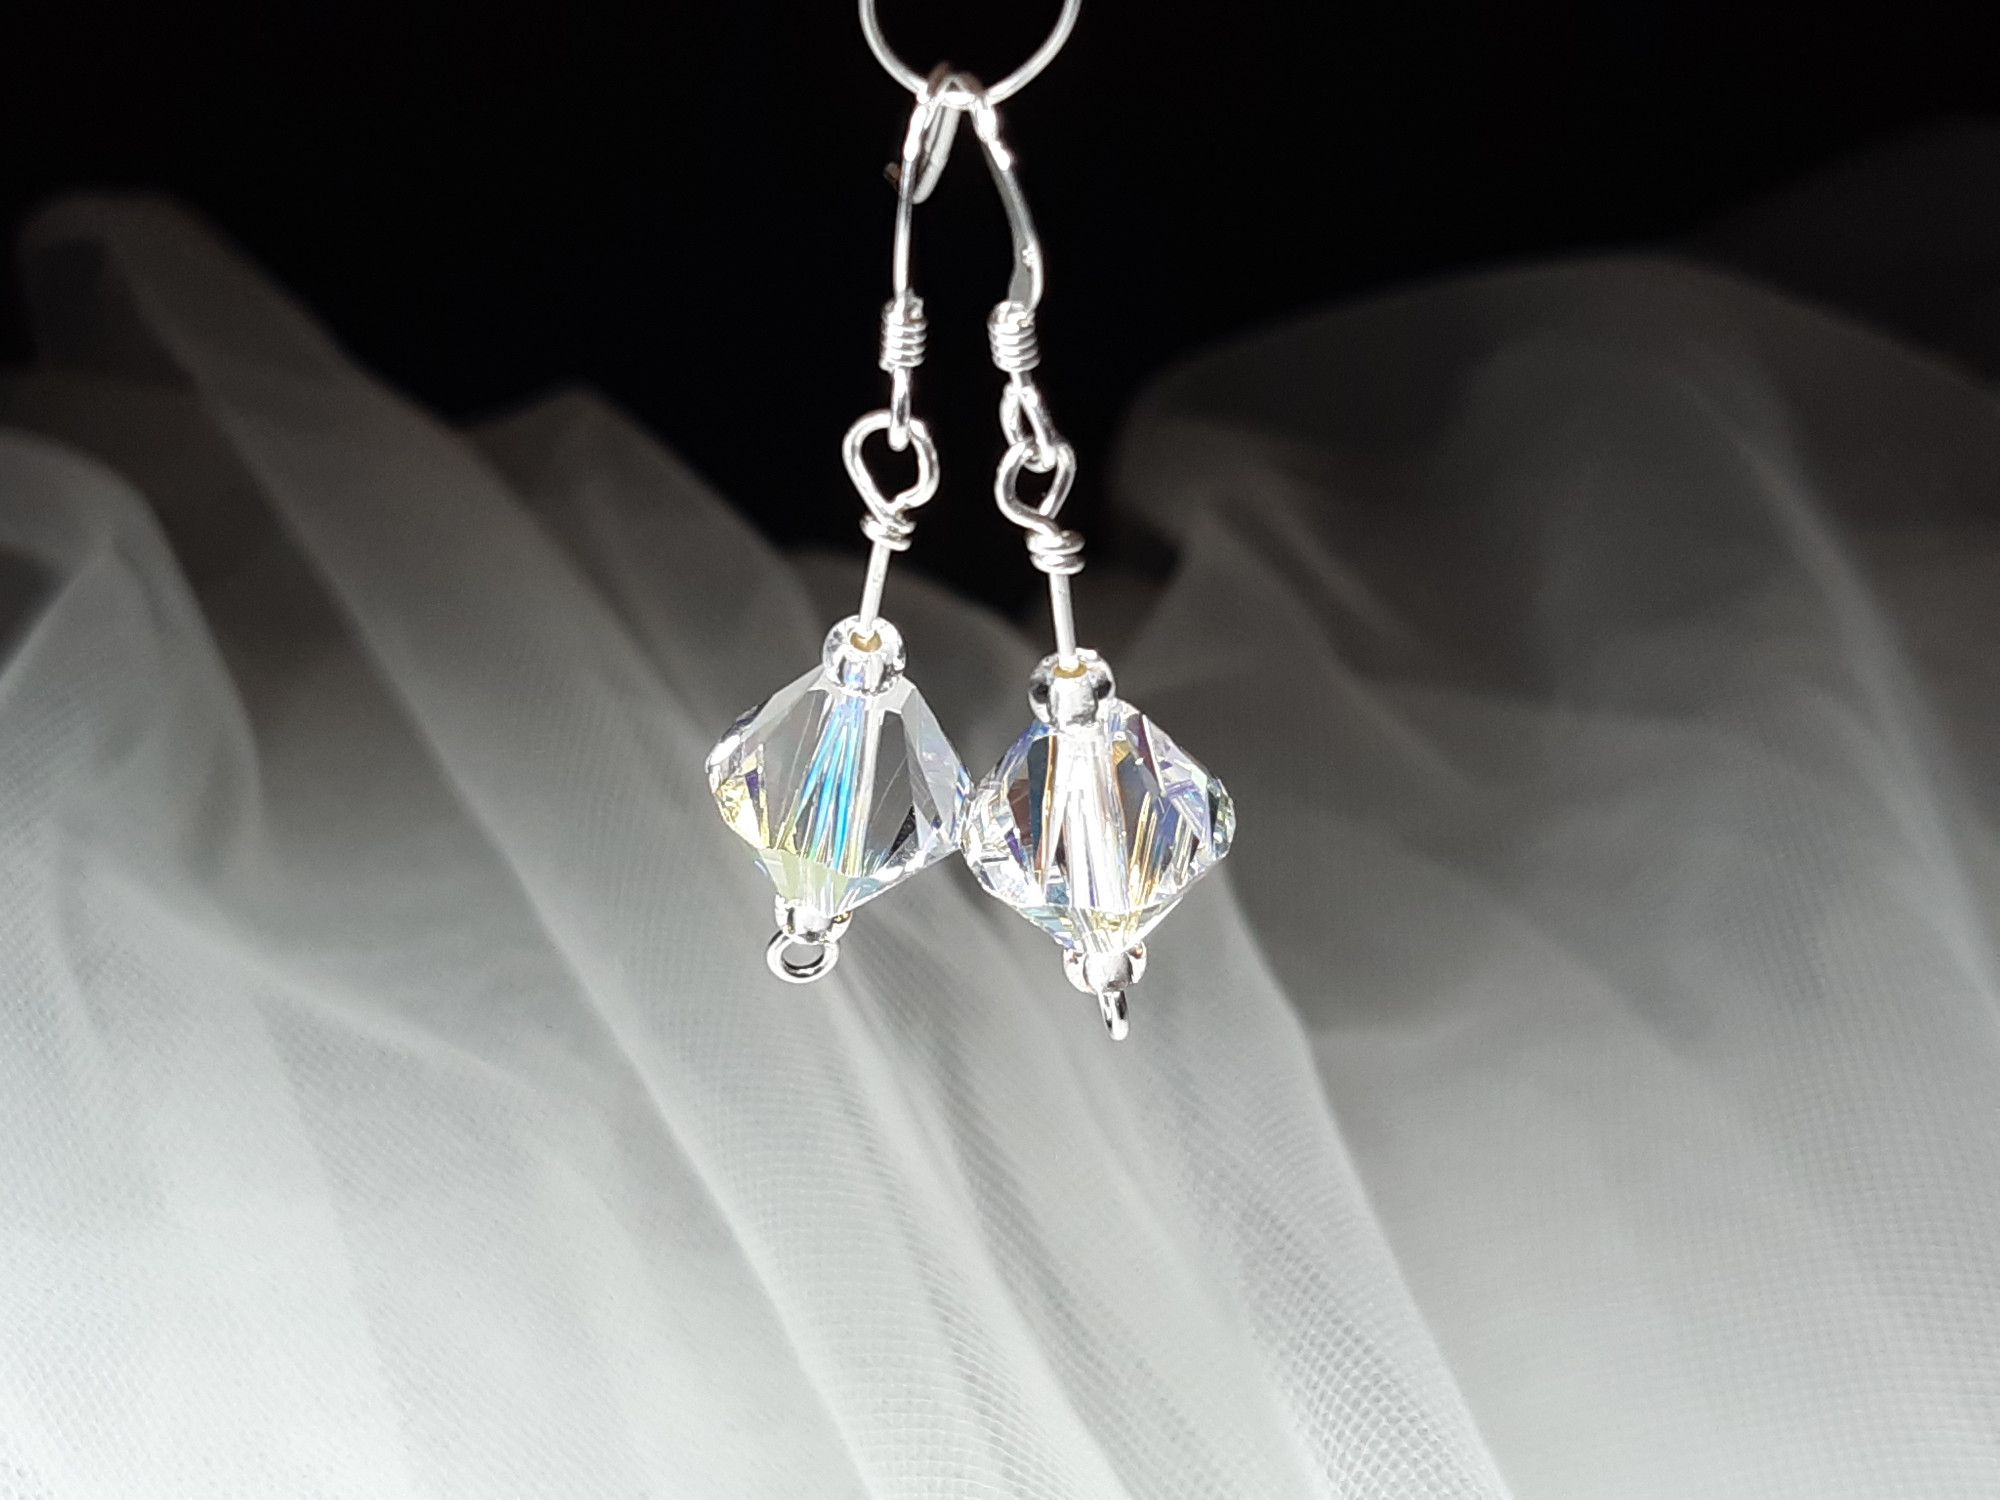 Occasion-wedding-swarovski crystal+sterling silver earrings-1.jpg